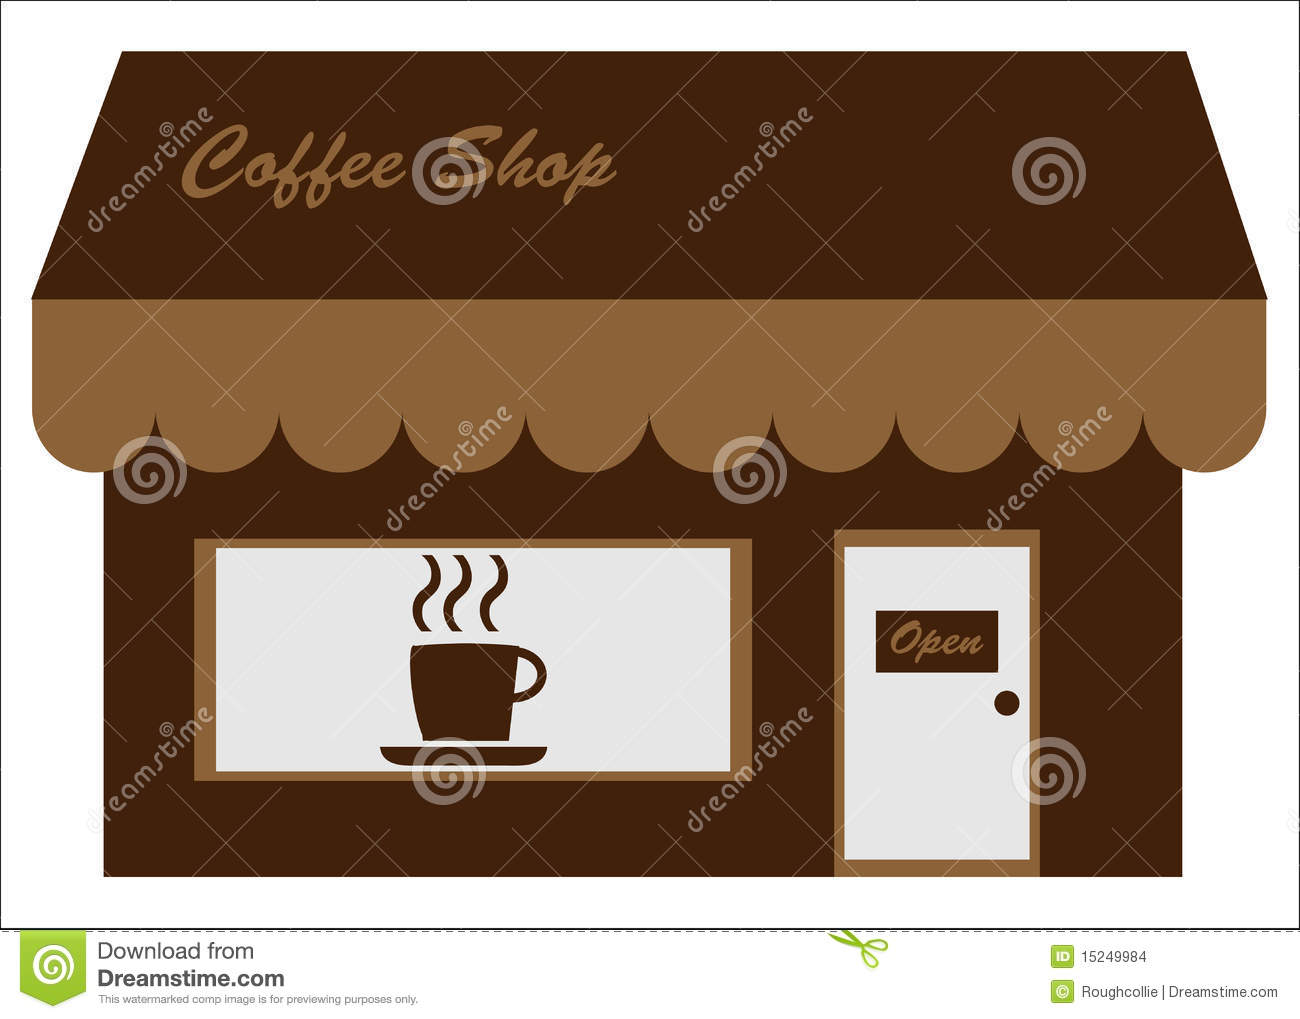 Logo or business / company card concept for a coffee shop / cafe.